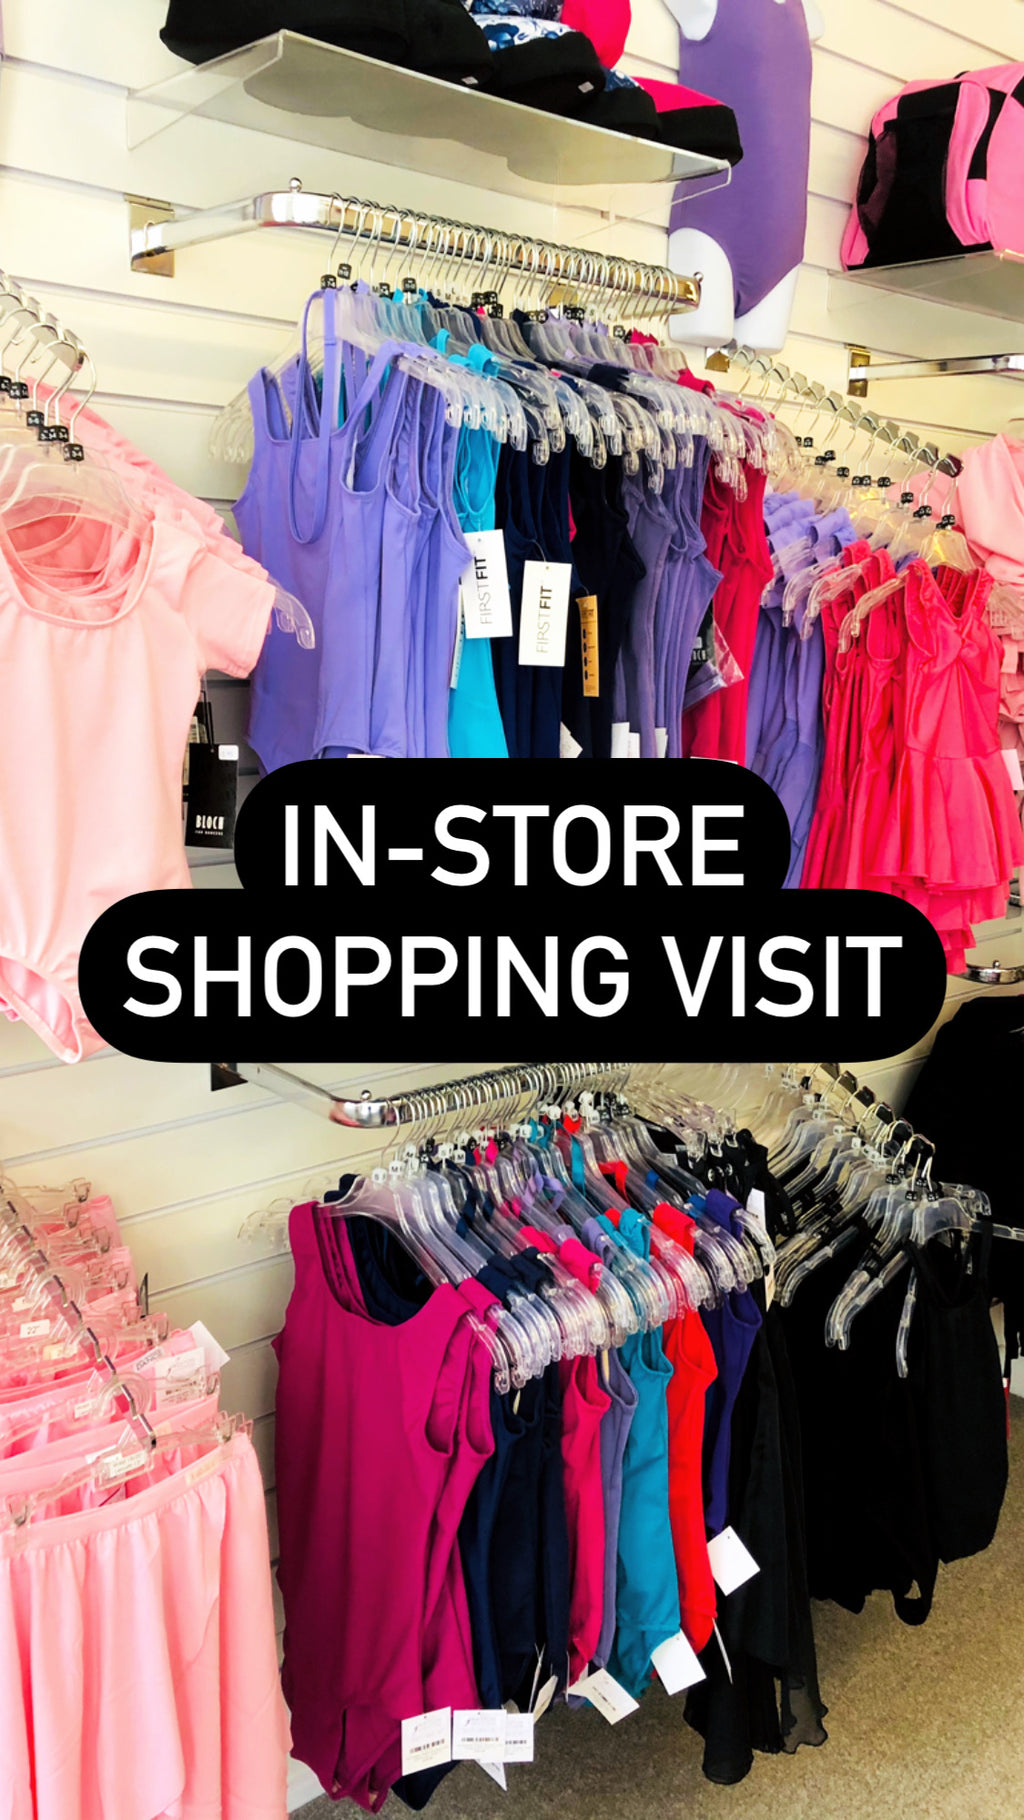 In-Store Shopping Visit (15 Mins)